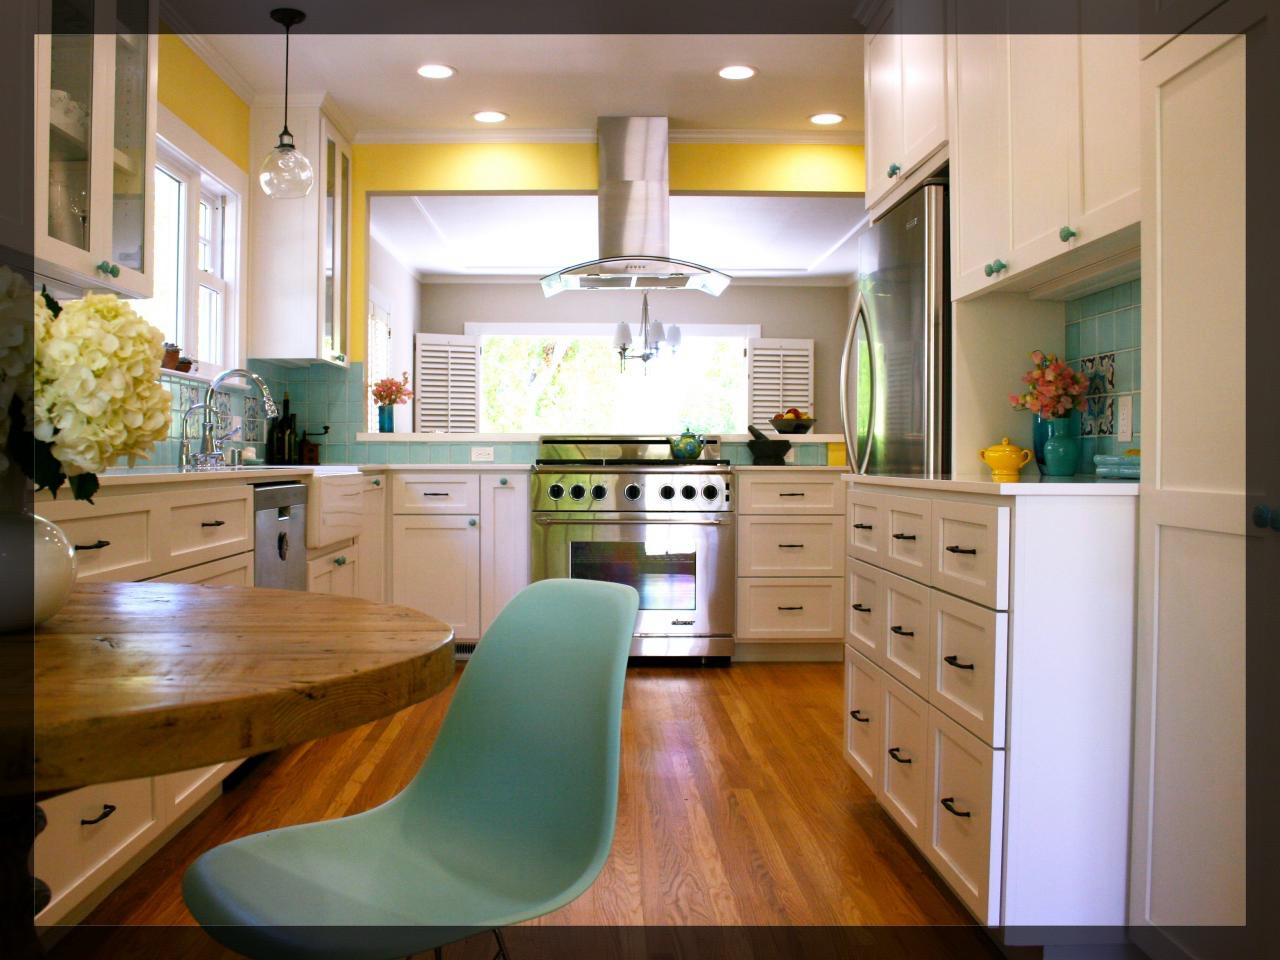 301 moved permanently for Blue kitchen cabinets with yellow walls